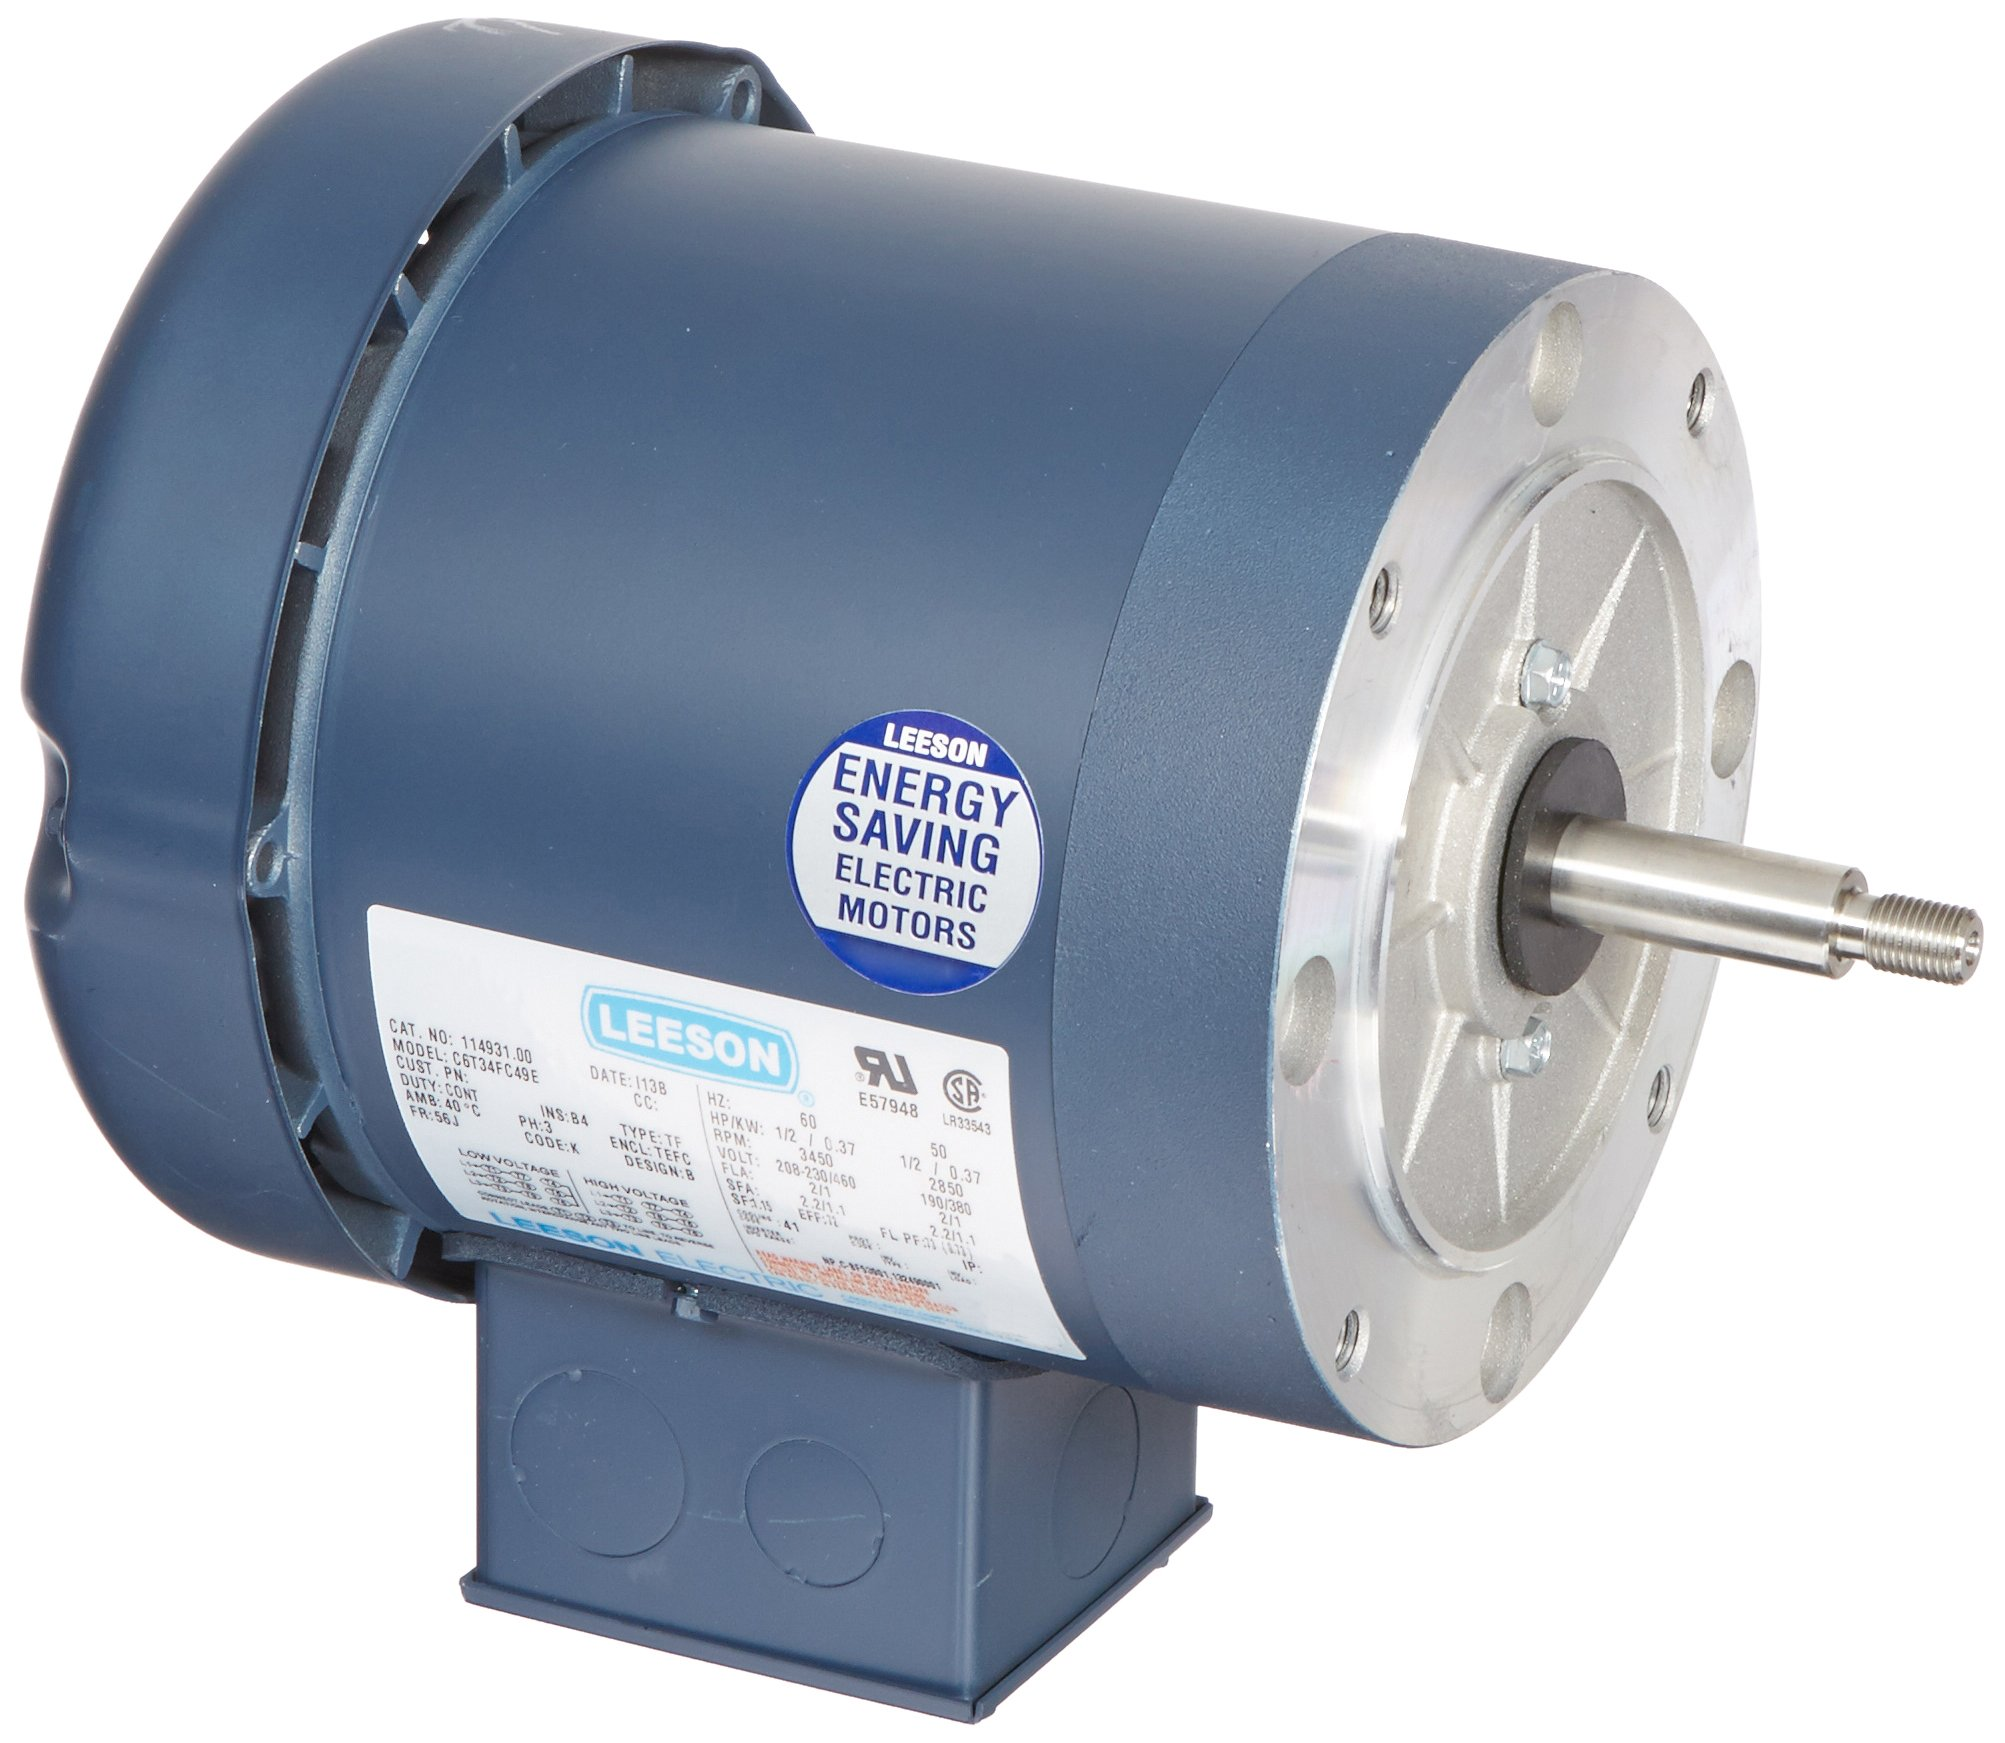 Leeson 114931.00 Jet Pump Motor, 3 Phase, 56J Frame, Round Mounting, 1/2HP, 3600 RPM, 208-230/460V Voltage, 60/50Hz Fequency